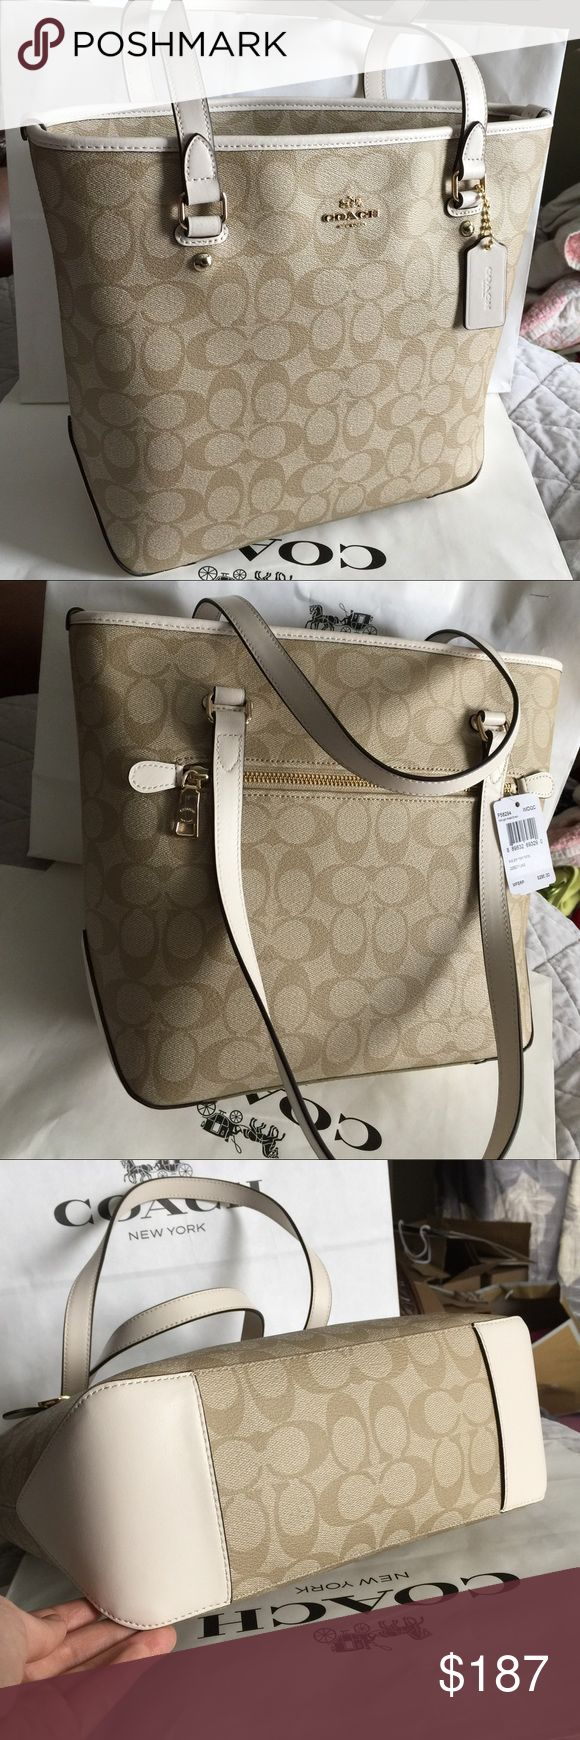 🍀Coach Bag🍀 100% Authentic Coach Tote Bag, brand new with tag!.😍😍😍 Coach Bags Totes